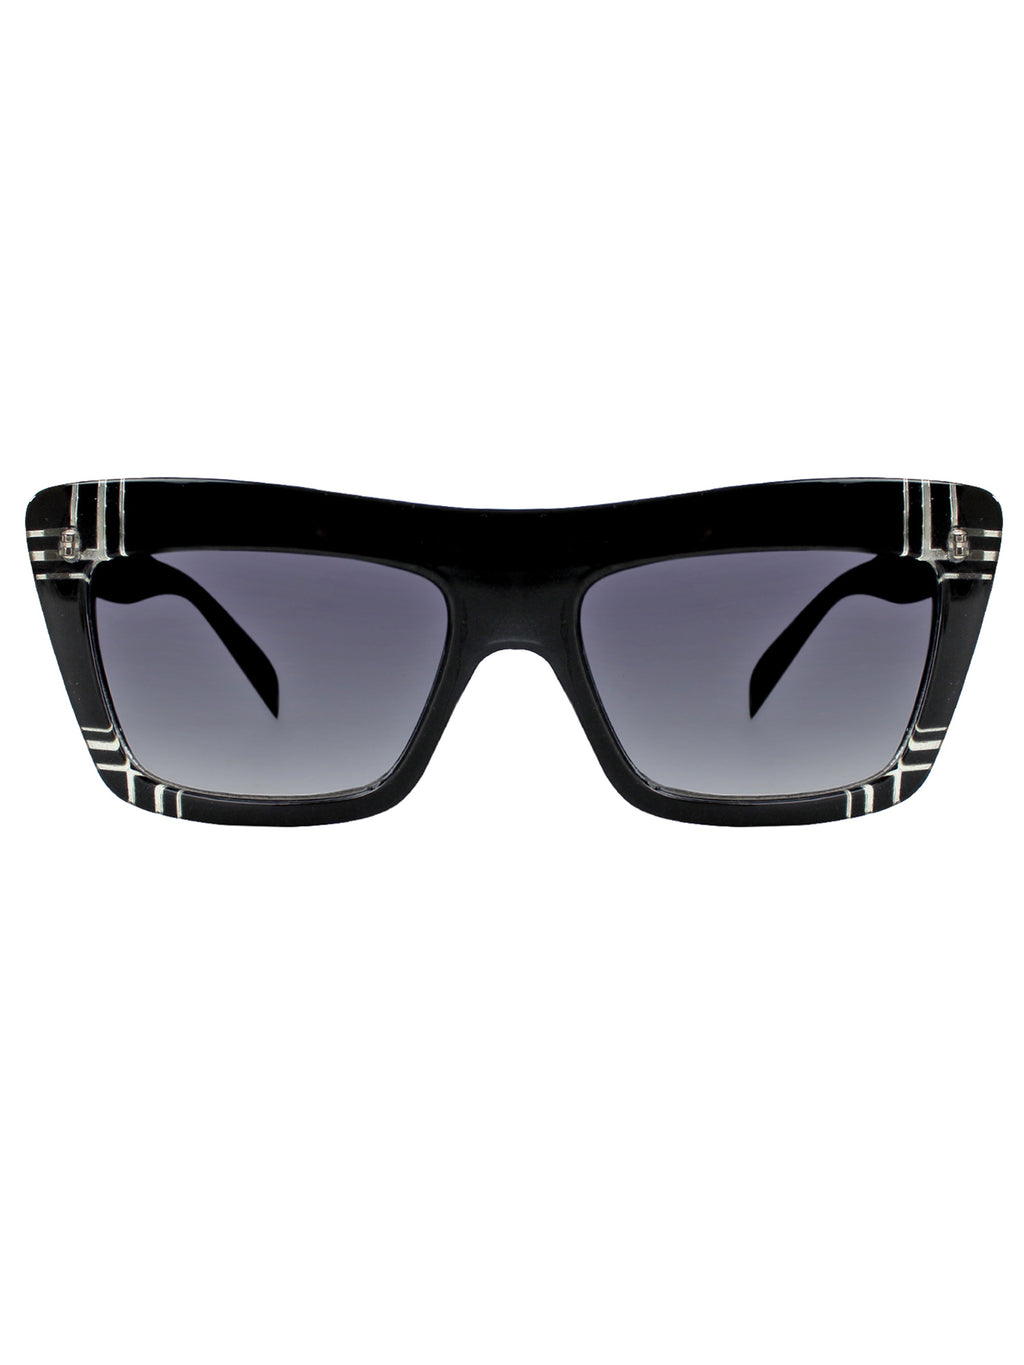 Retro Squared Sunglasses With Hard Case